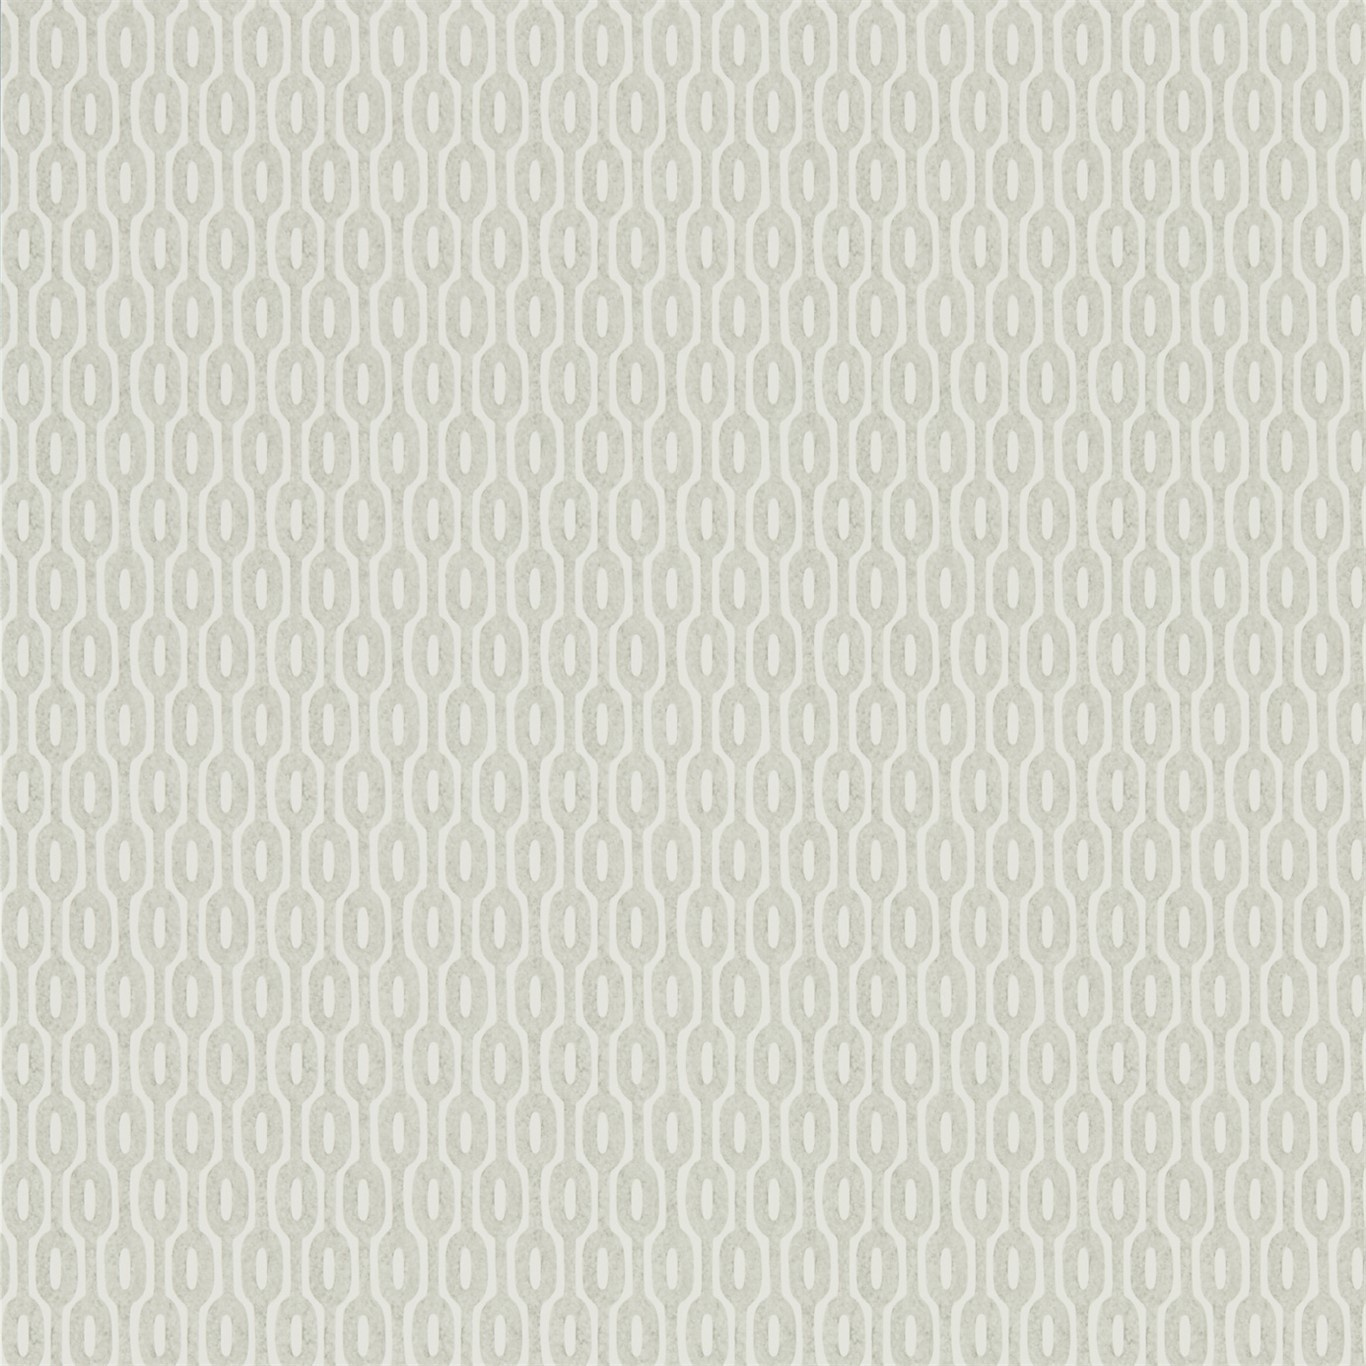 Image of Sanderson Home Hemp Mole Wallpaper 216370